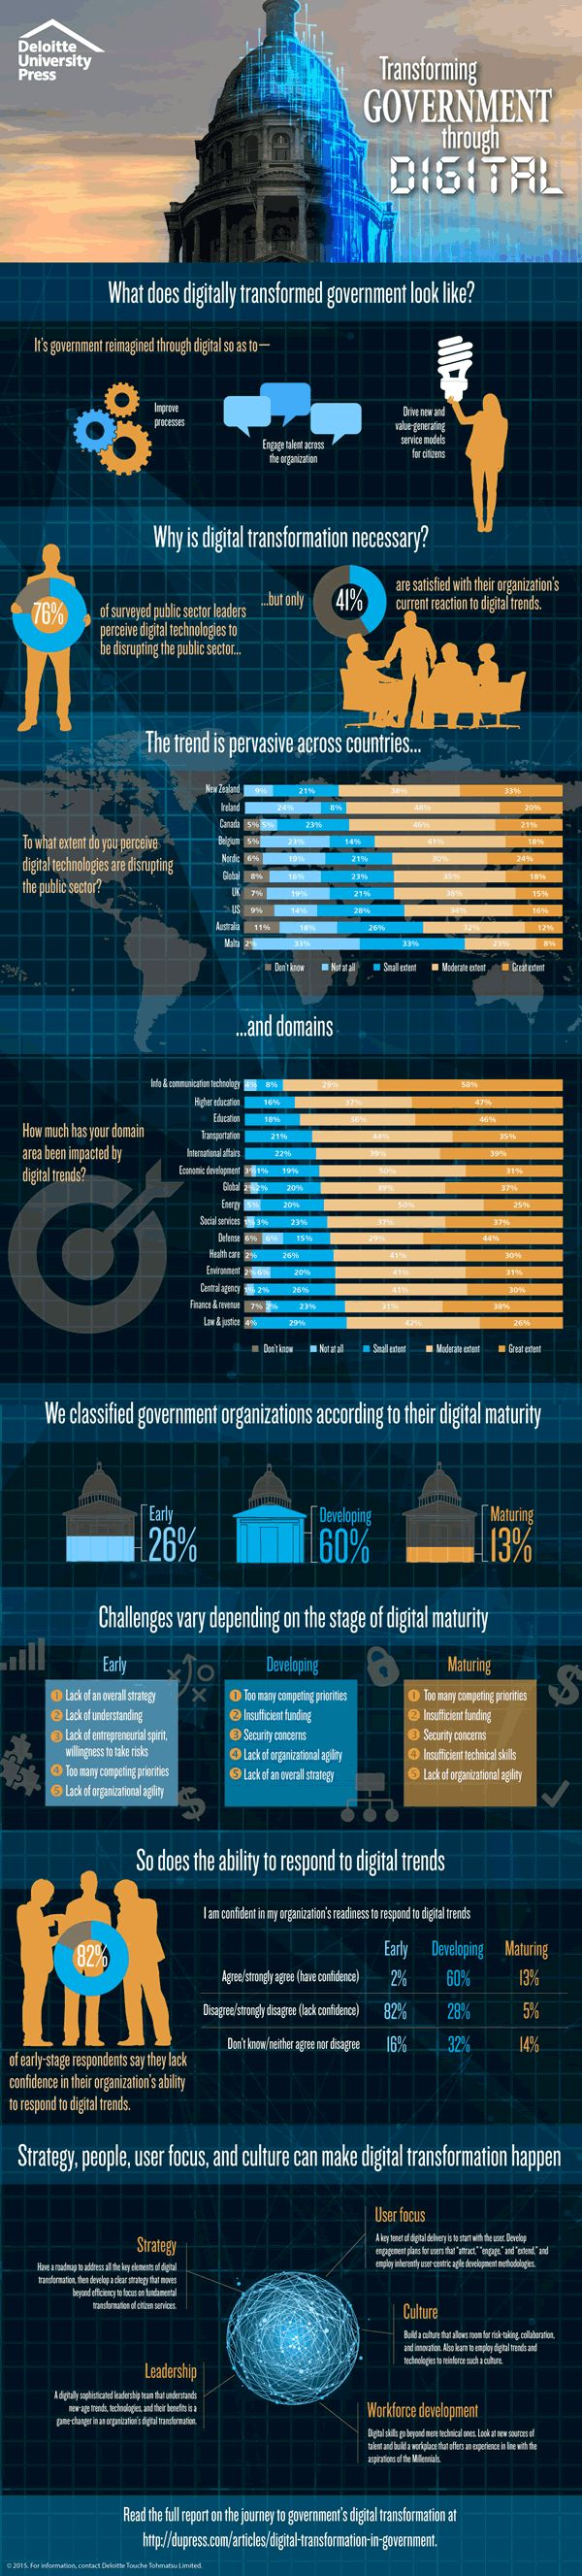 Digital transformation and government - infographic Deloitte University Press - source and larger image